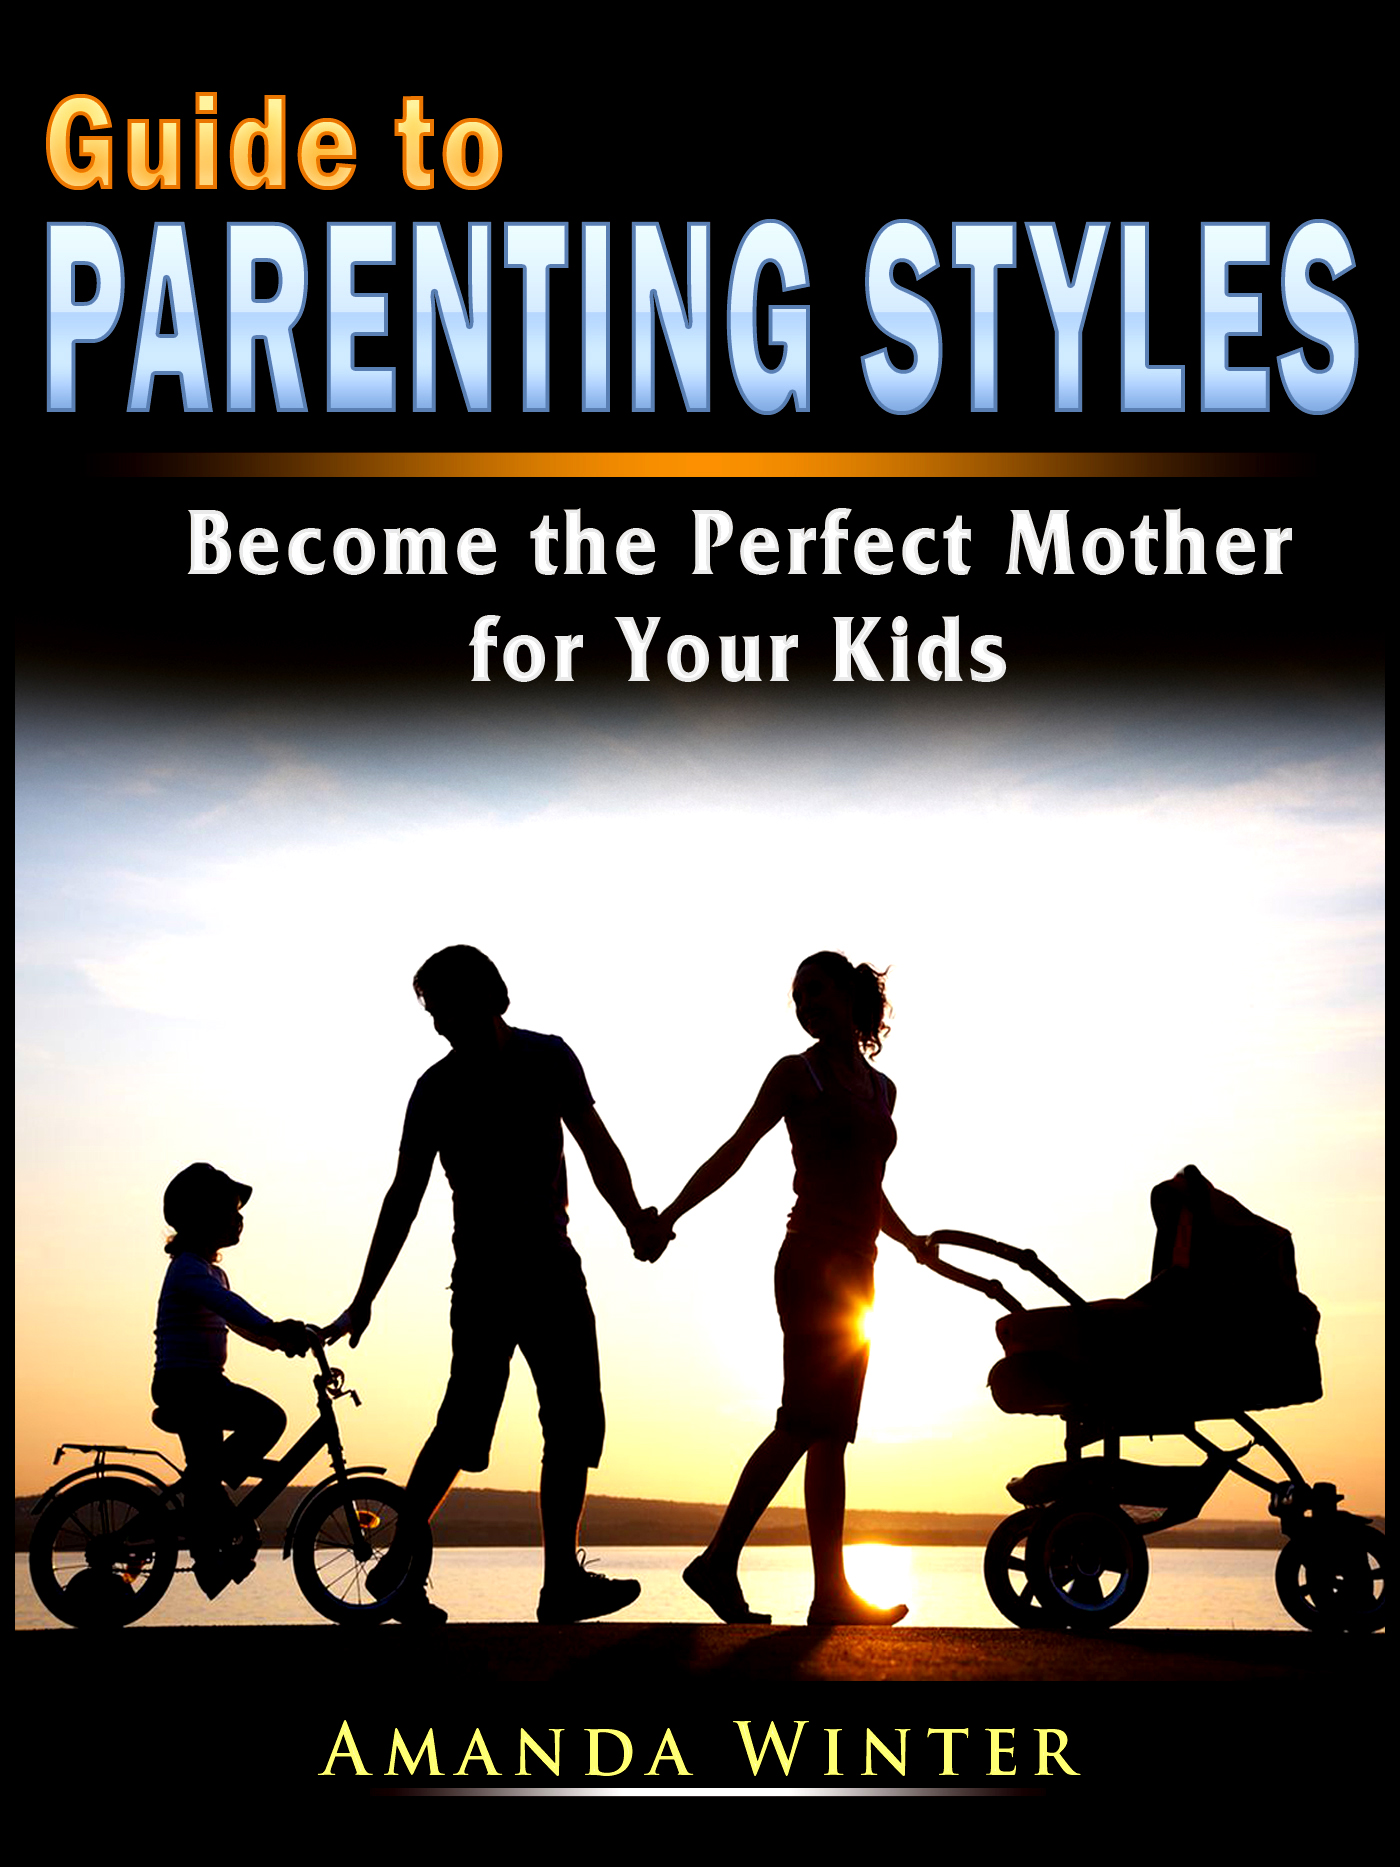 Guide to parenting styles: become the perfect mother for your kids